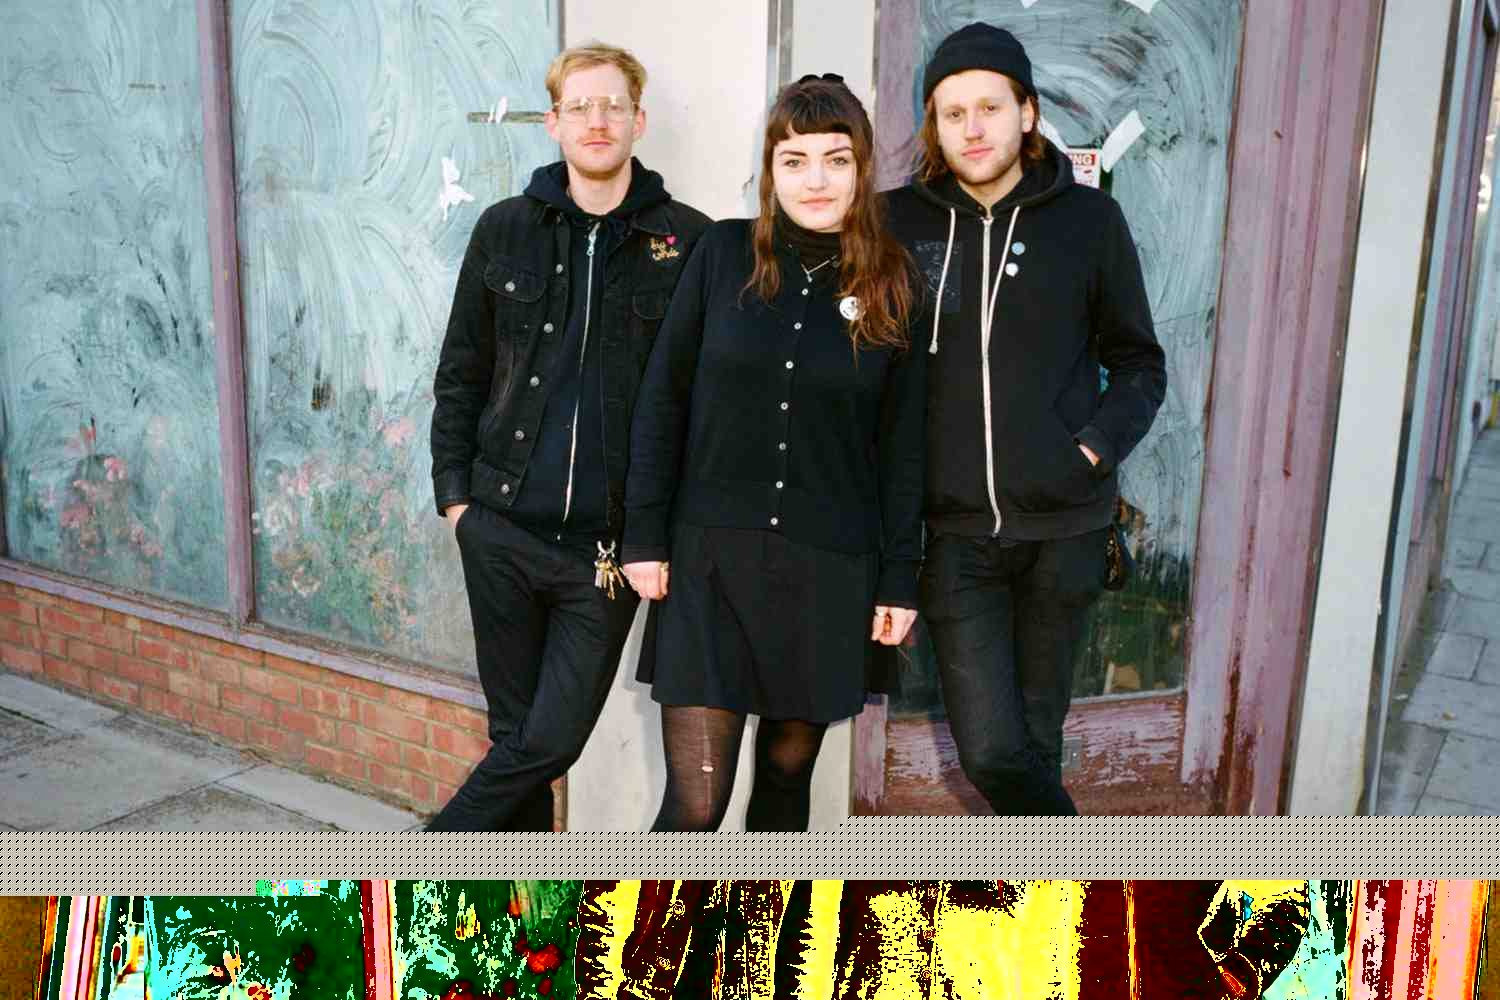 Muncie Girls are back with prime banger 'Picture Of Health'